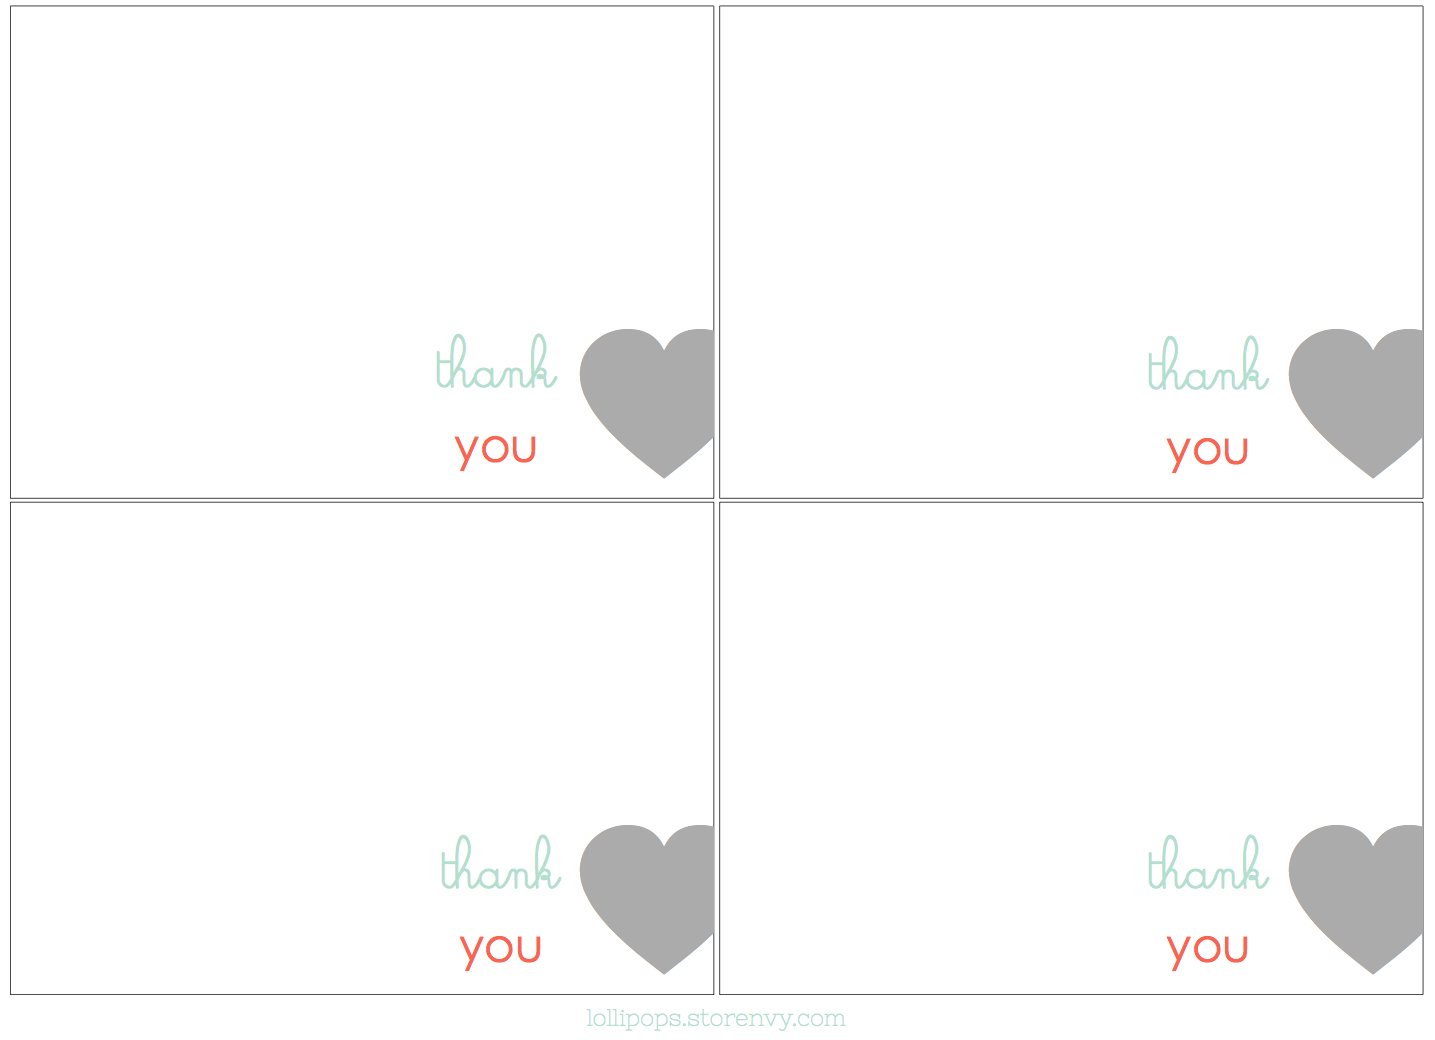 free thank you card printables!